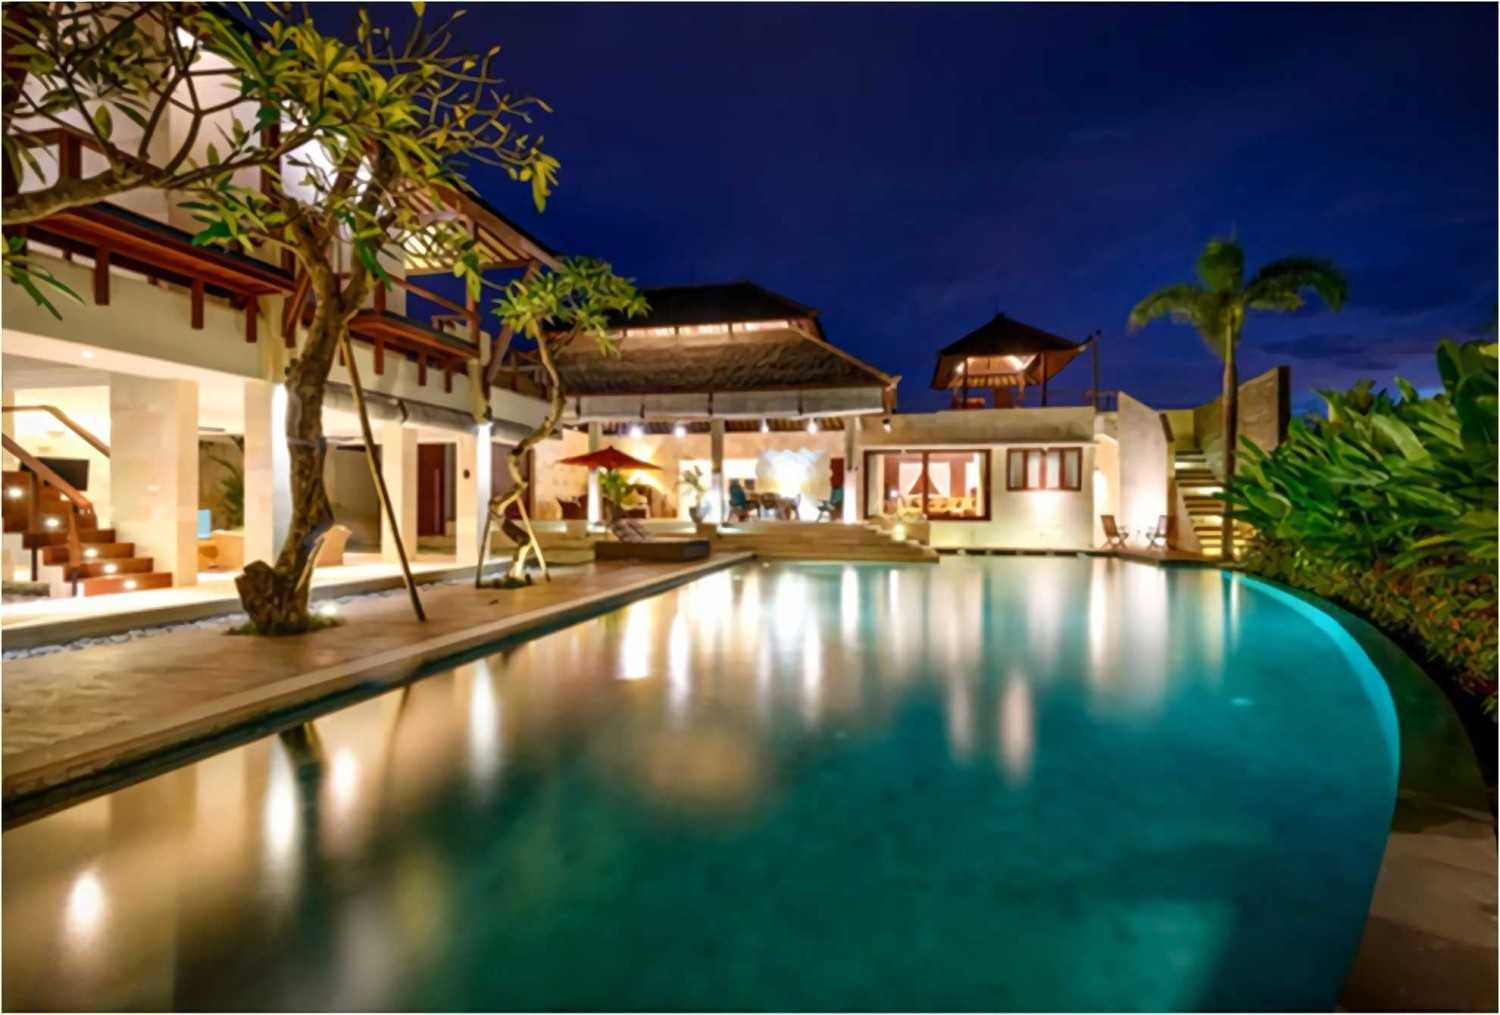 Hg Architects & Designers Associates Villa Saya Canggu, Bali Canggu, Bali Swimming Pool View  24262